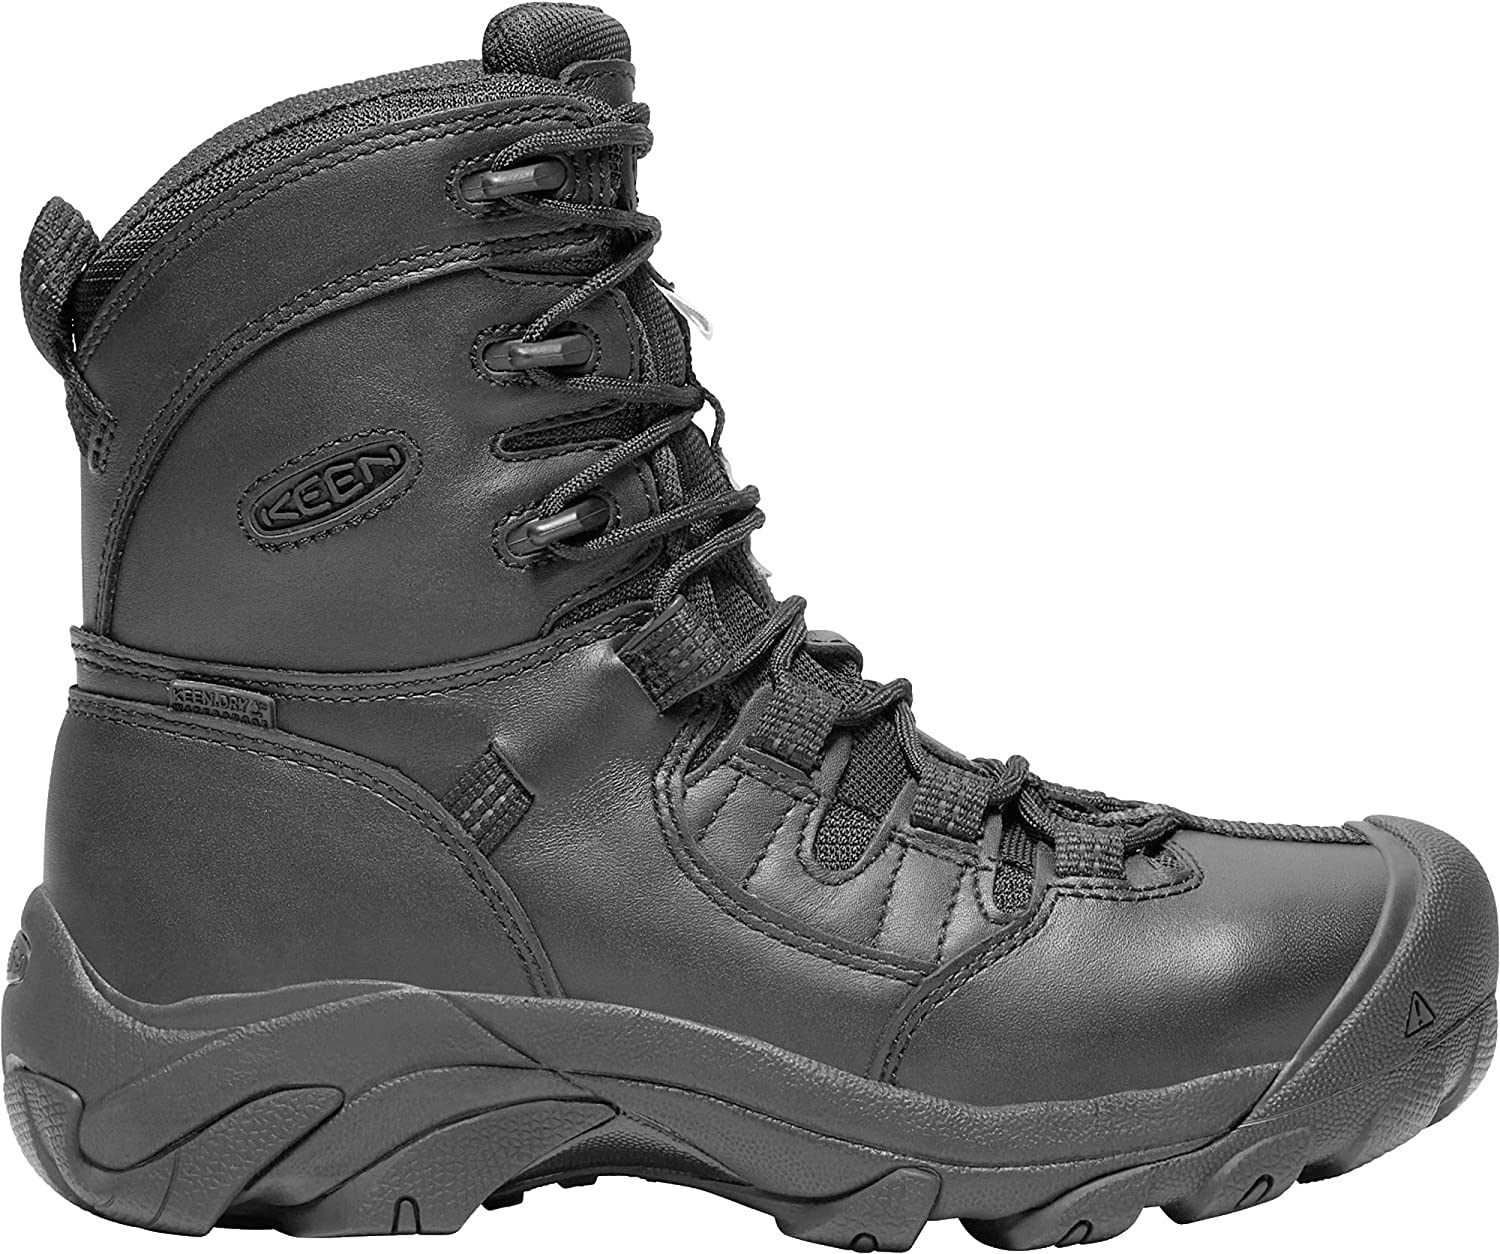 KEEN Utility - Women's Detroit 8' Waterproof (Soft Toe) Work Boots